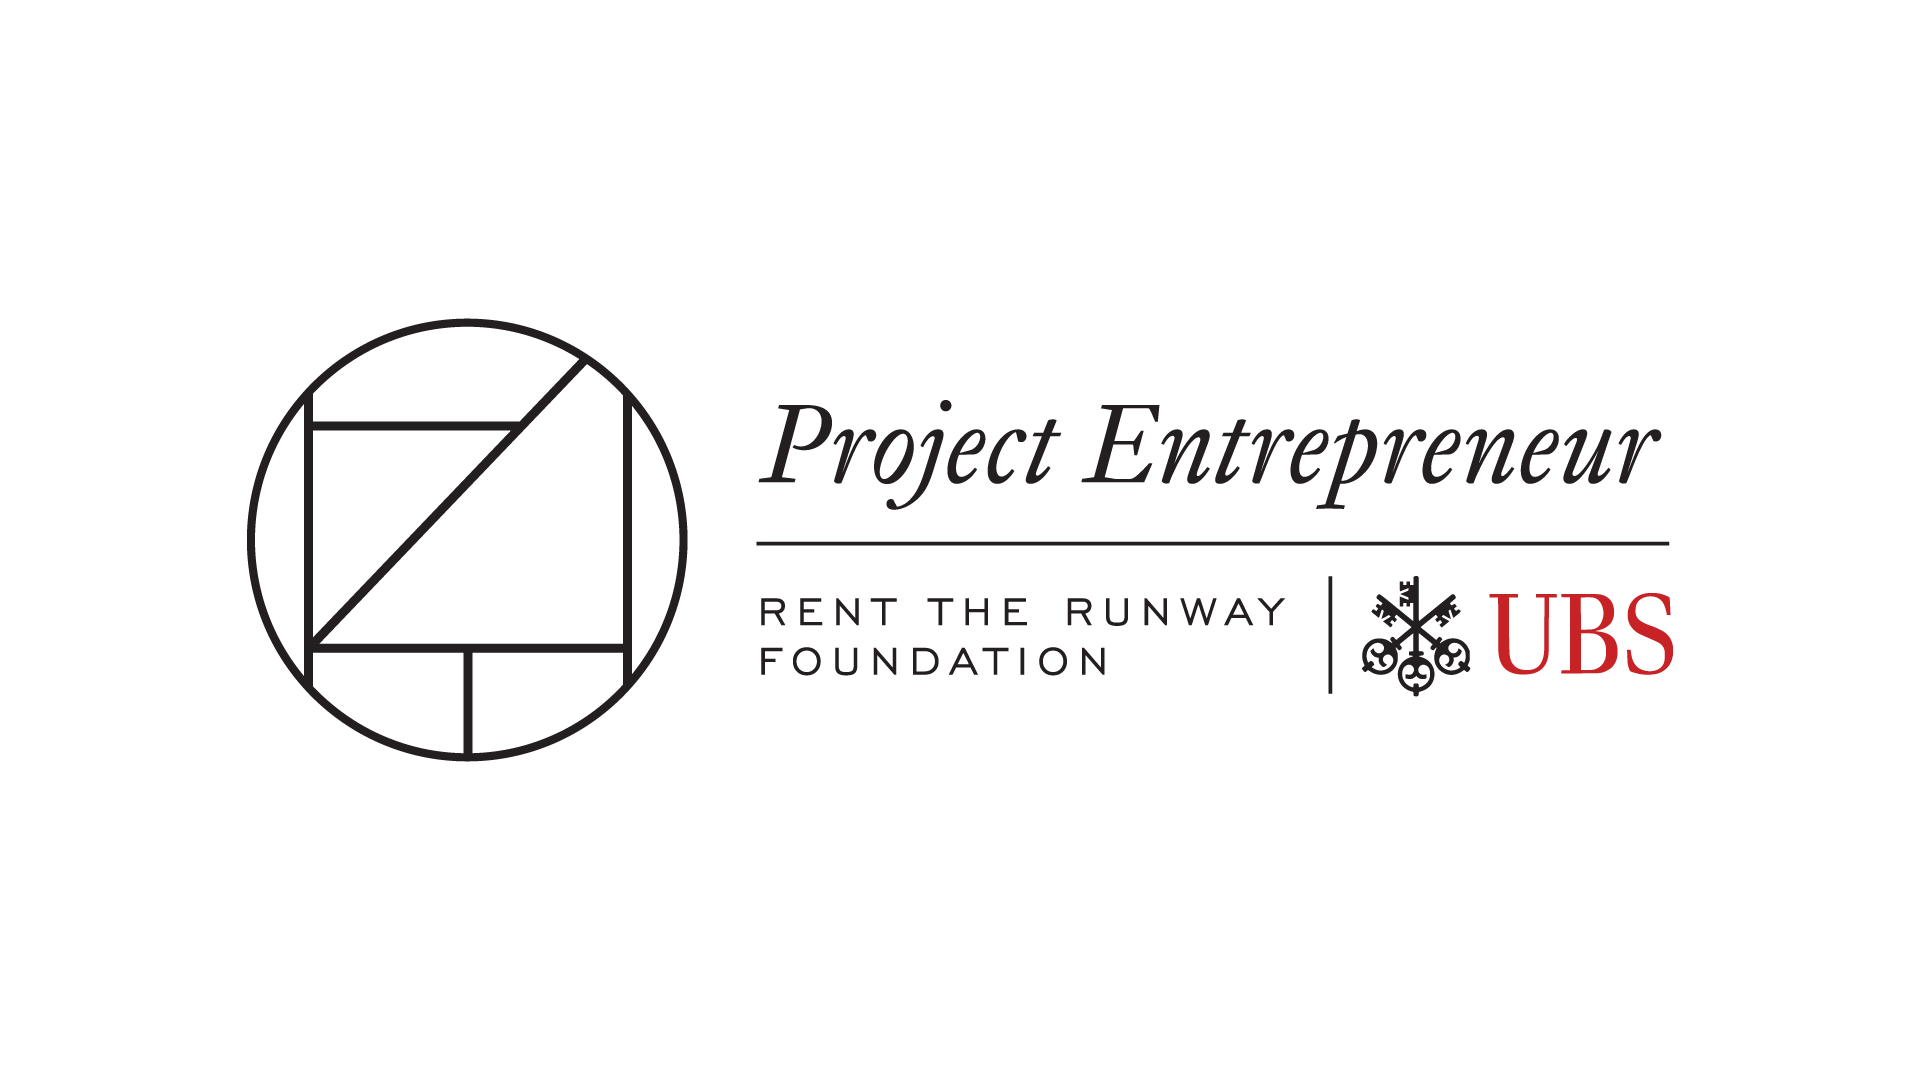 Project Entrepreneur, Rent The Runway  Logo — Paradox Beauty